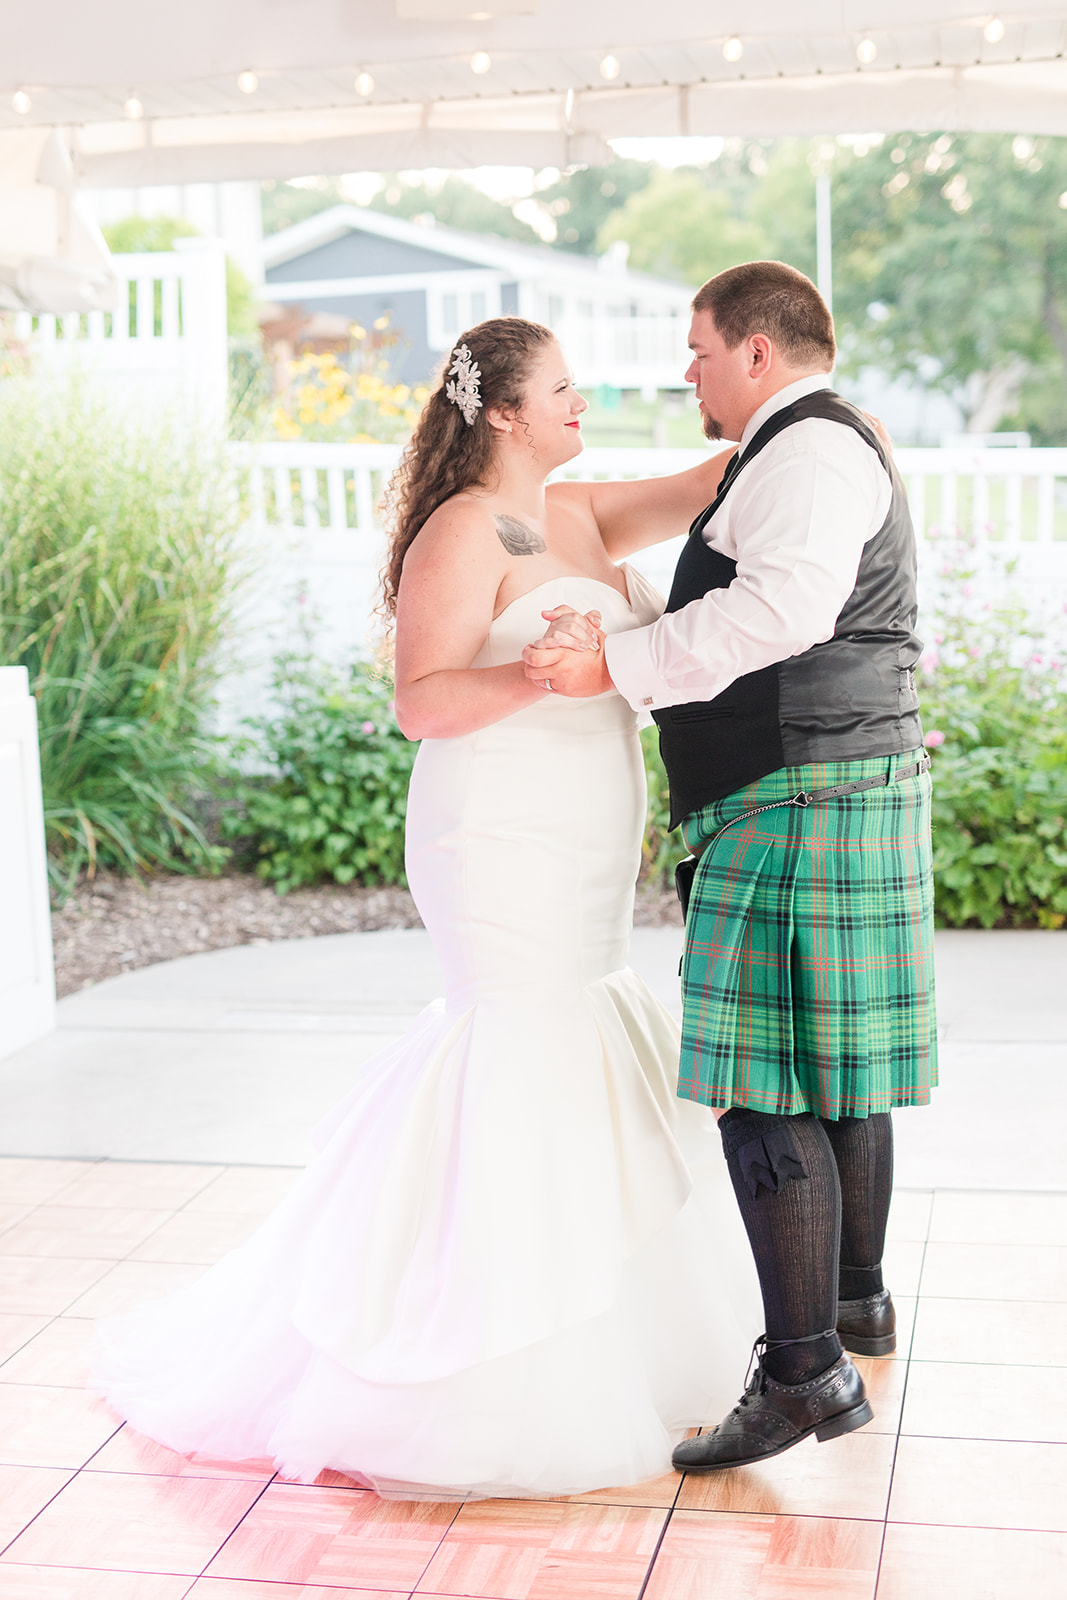 Bride and groom sharing their first dance at their Bay Pointe Inn wedding in Shelbyville, Michigan